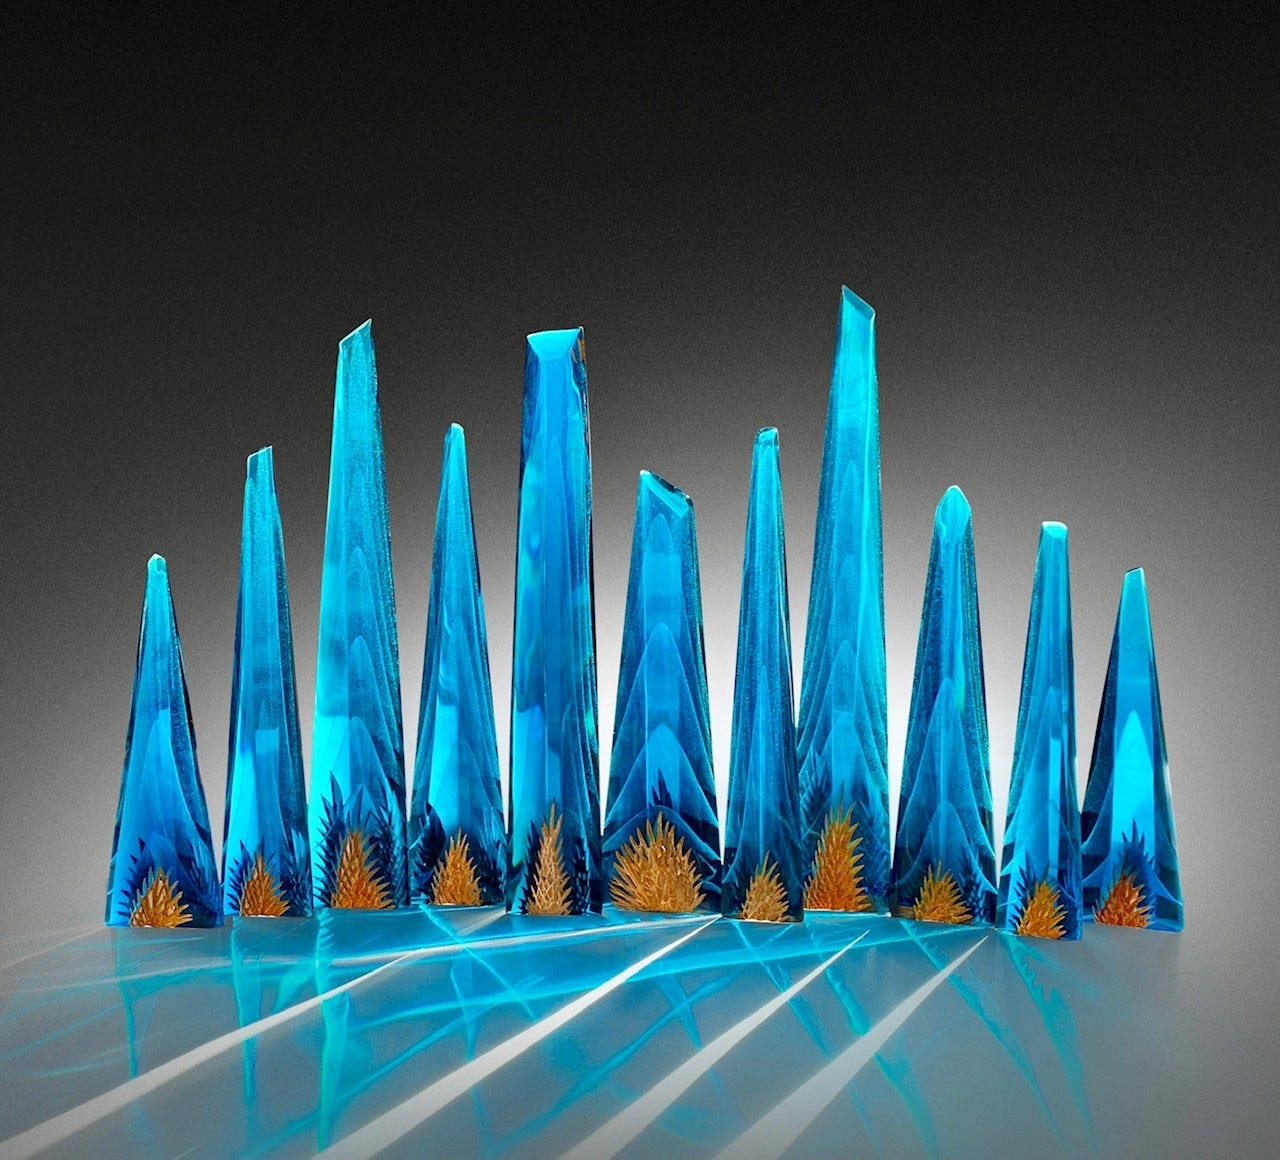 Royal Oak gallery celebrates 50th anniversary with glass art from around the world